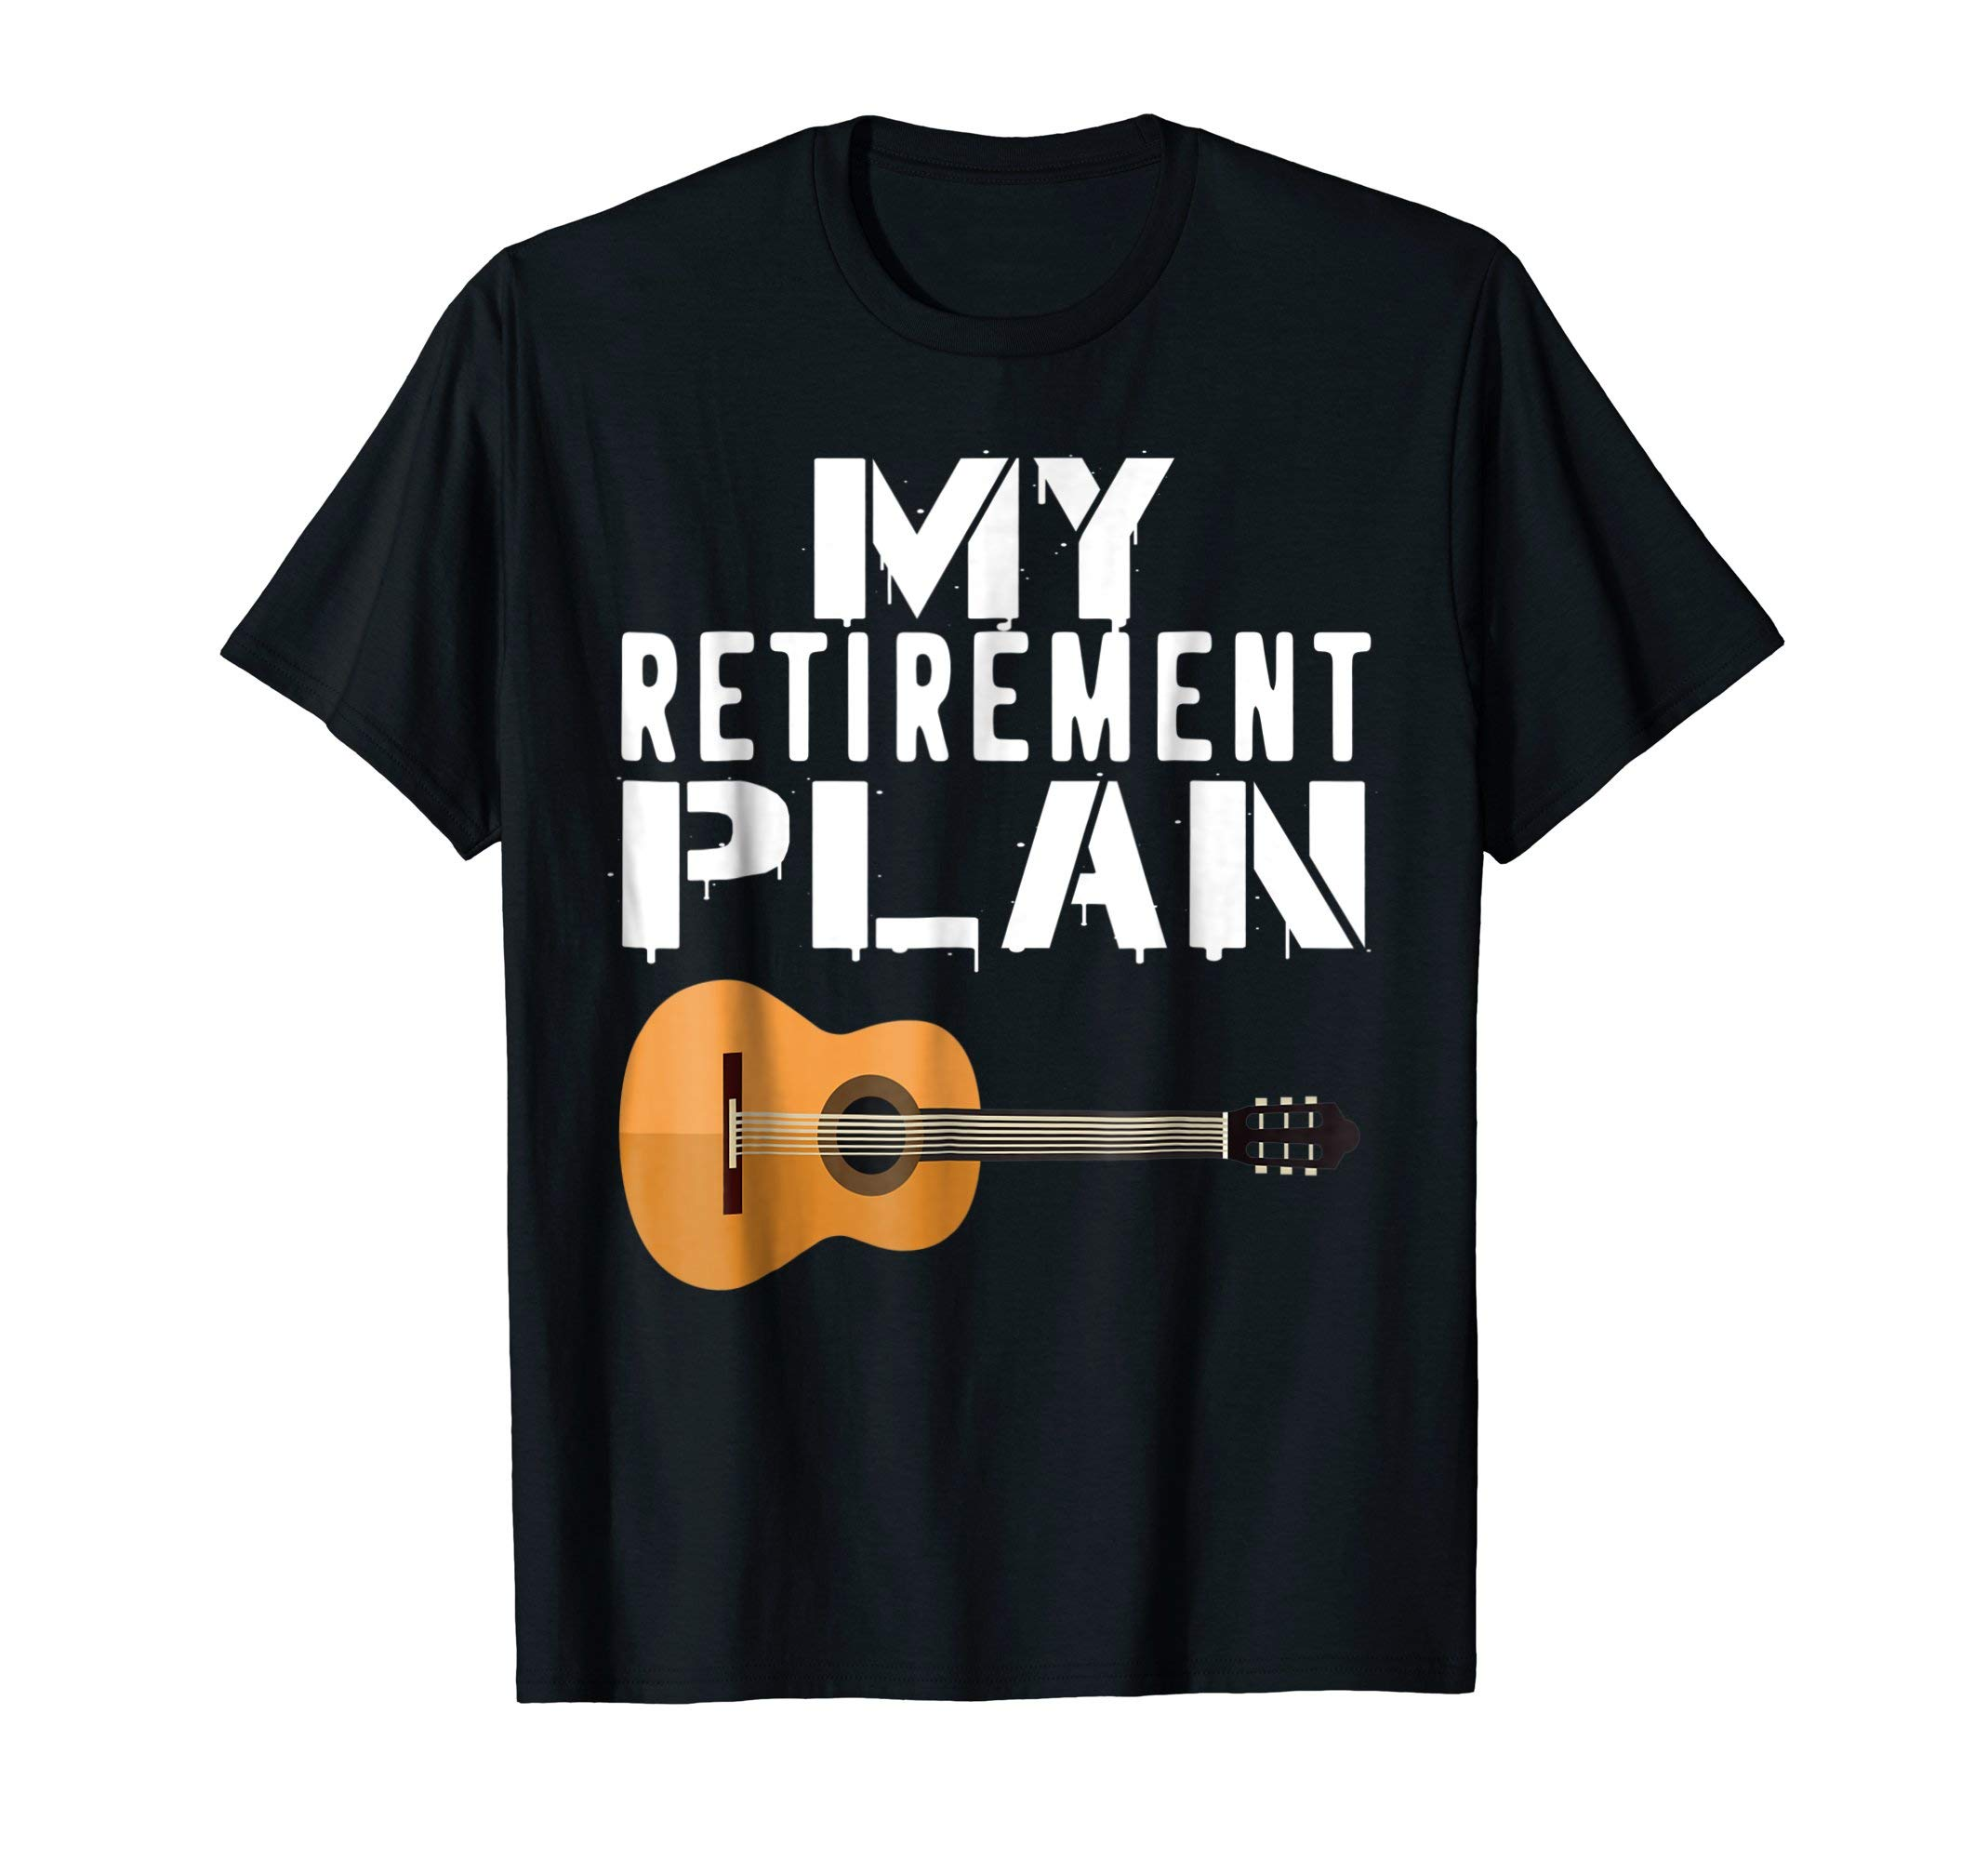 Guitars Acoustic Classic Retirement Plan Guitar T-Shirt by Acoustic Guitar T shirt & Gifts